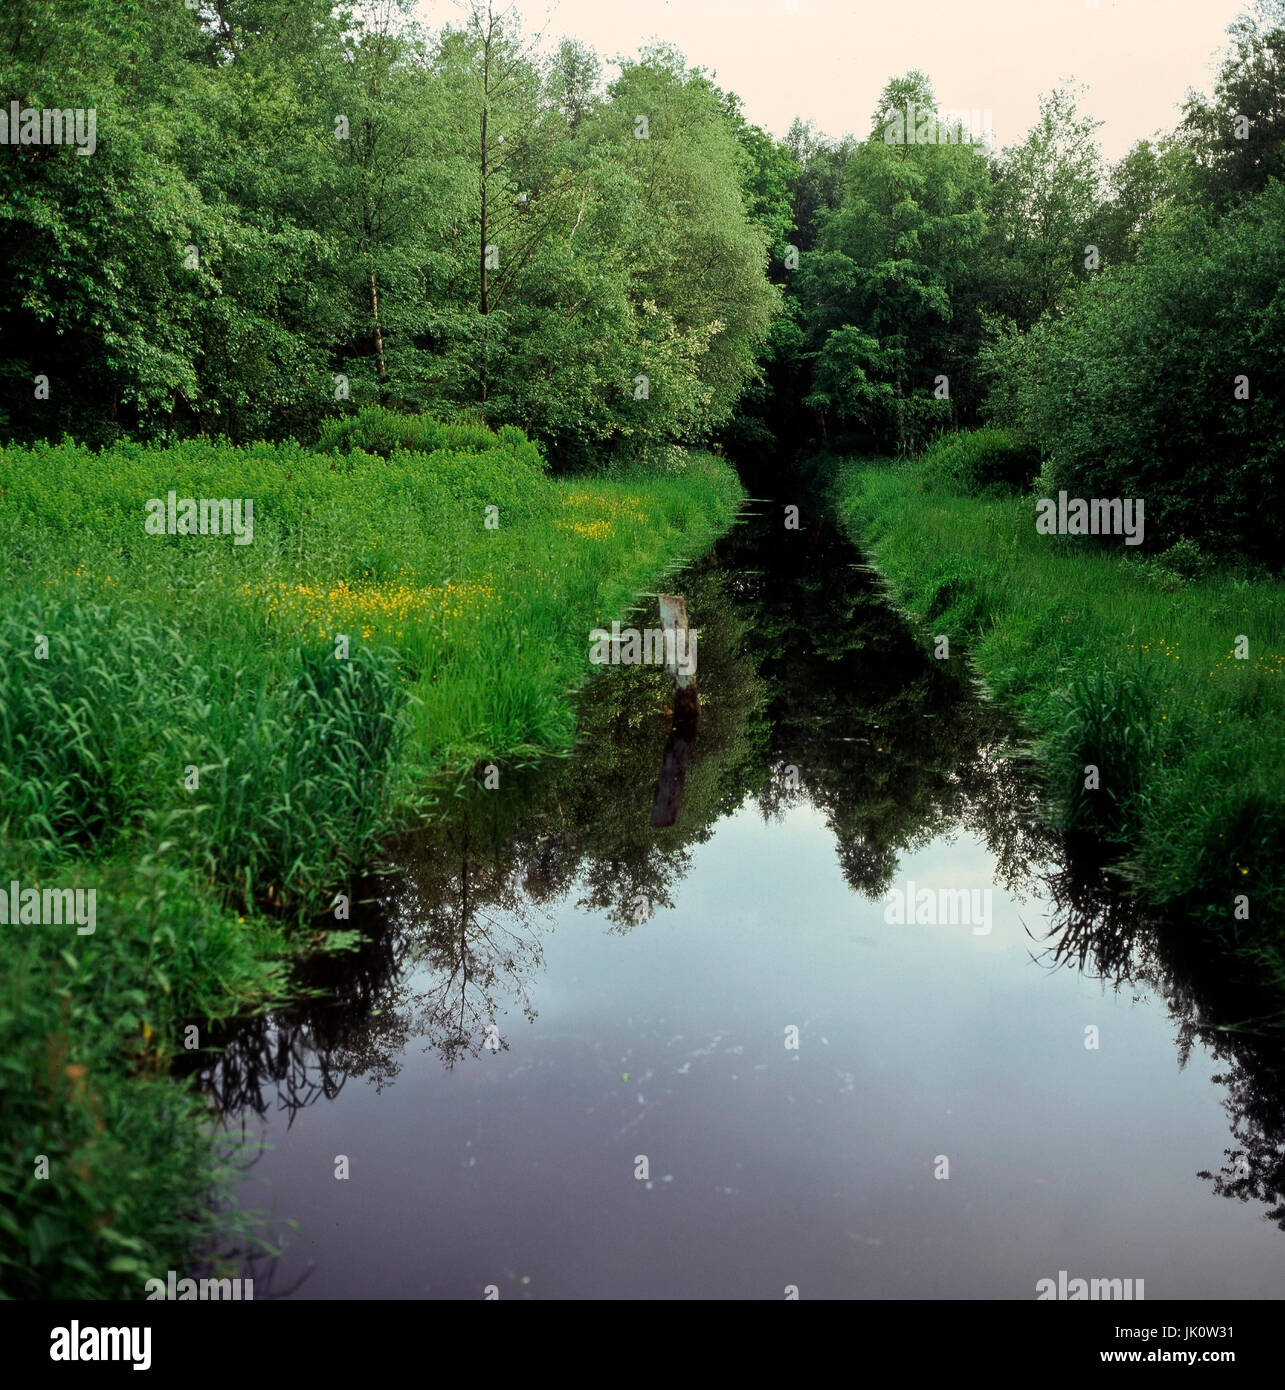 bank growth in moorgraben in the spring. plants and trees in jump alongside a ditch in the moorland., uferbewuchs - Stock Image